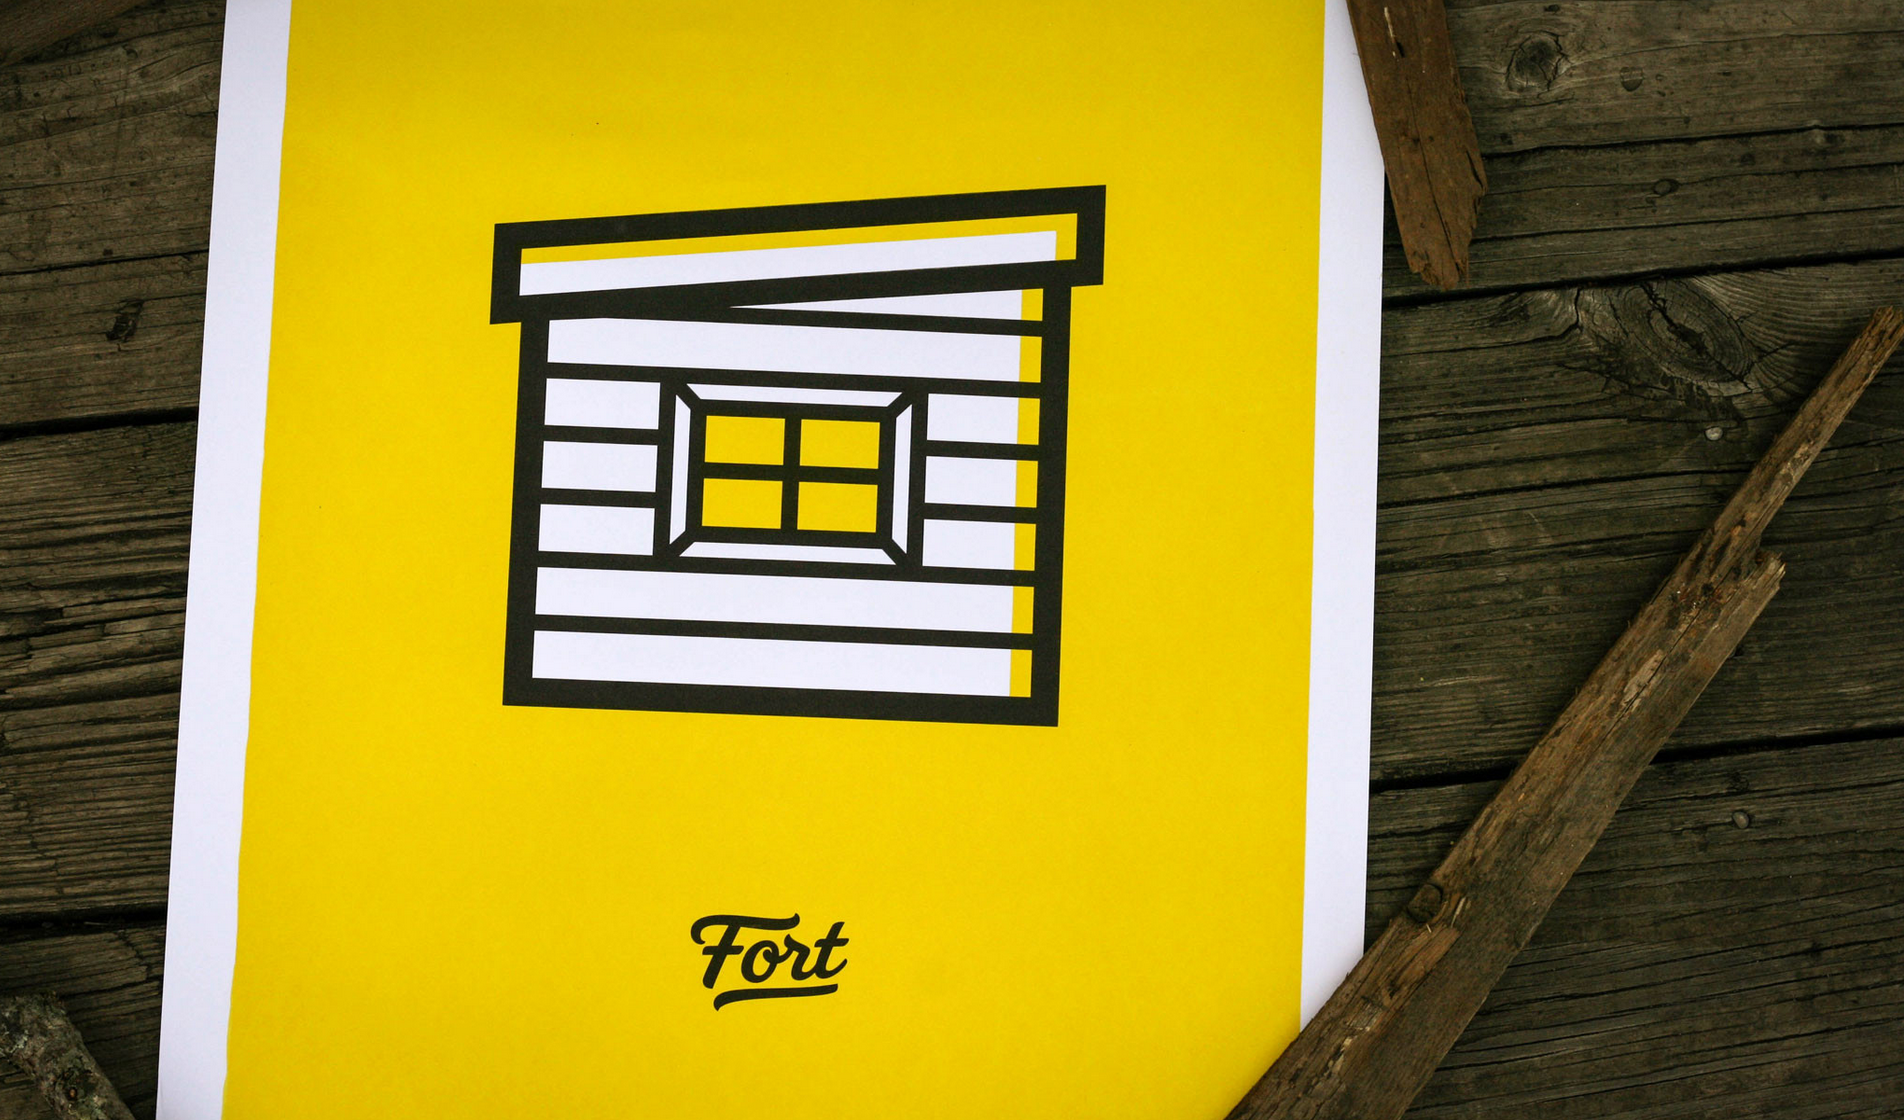 fort-poster-4.png